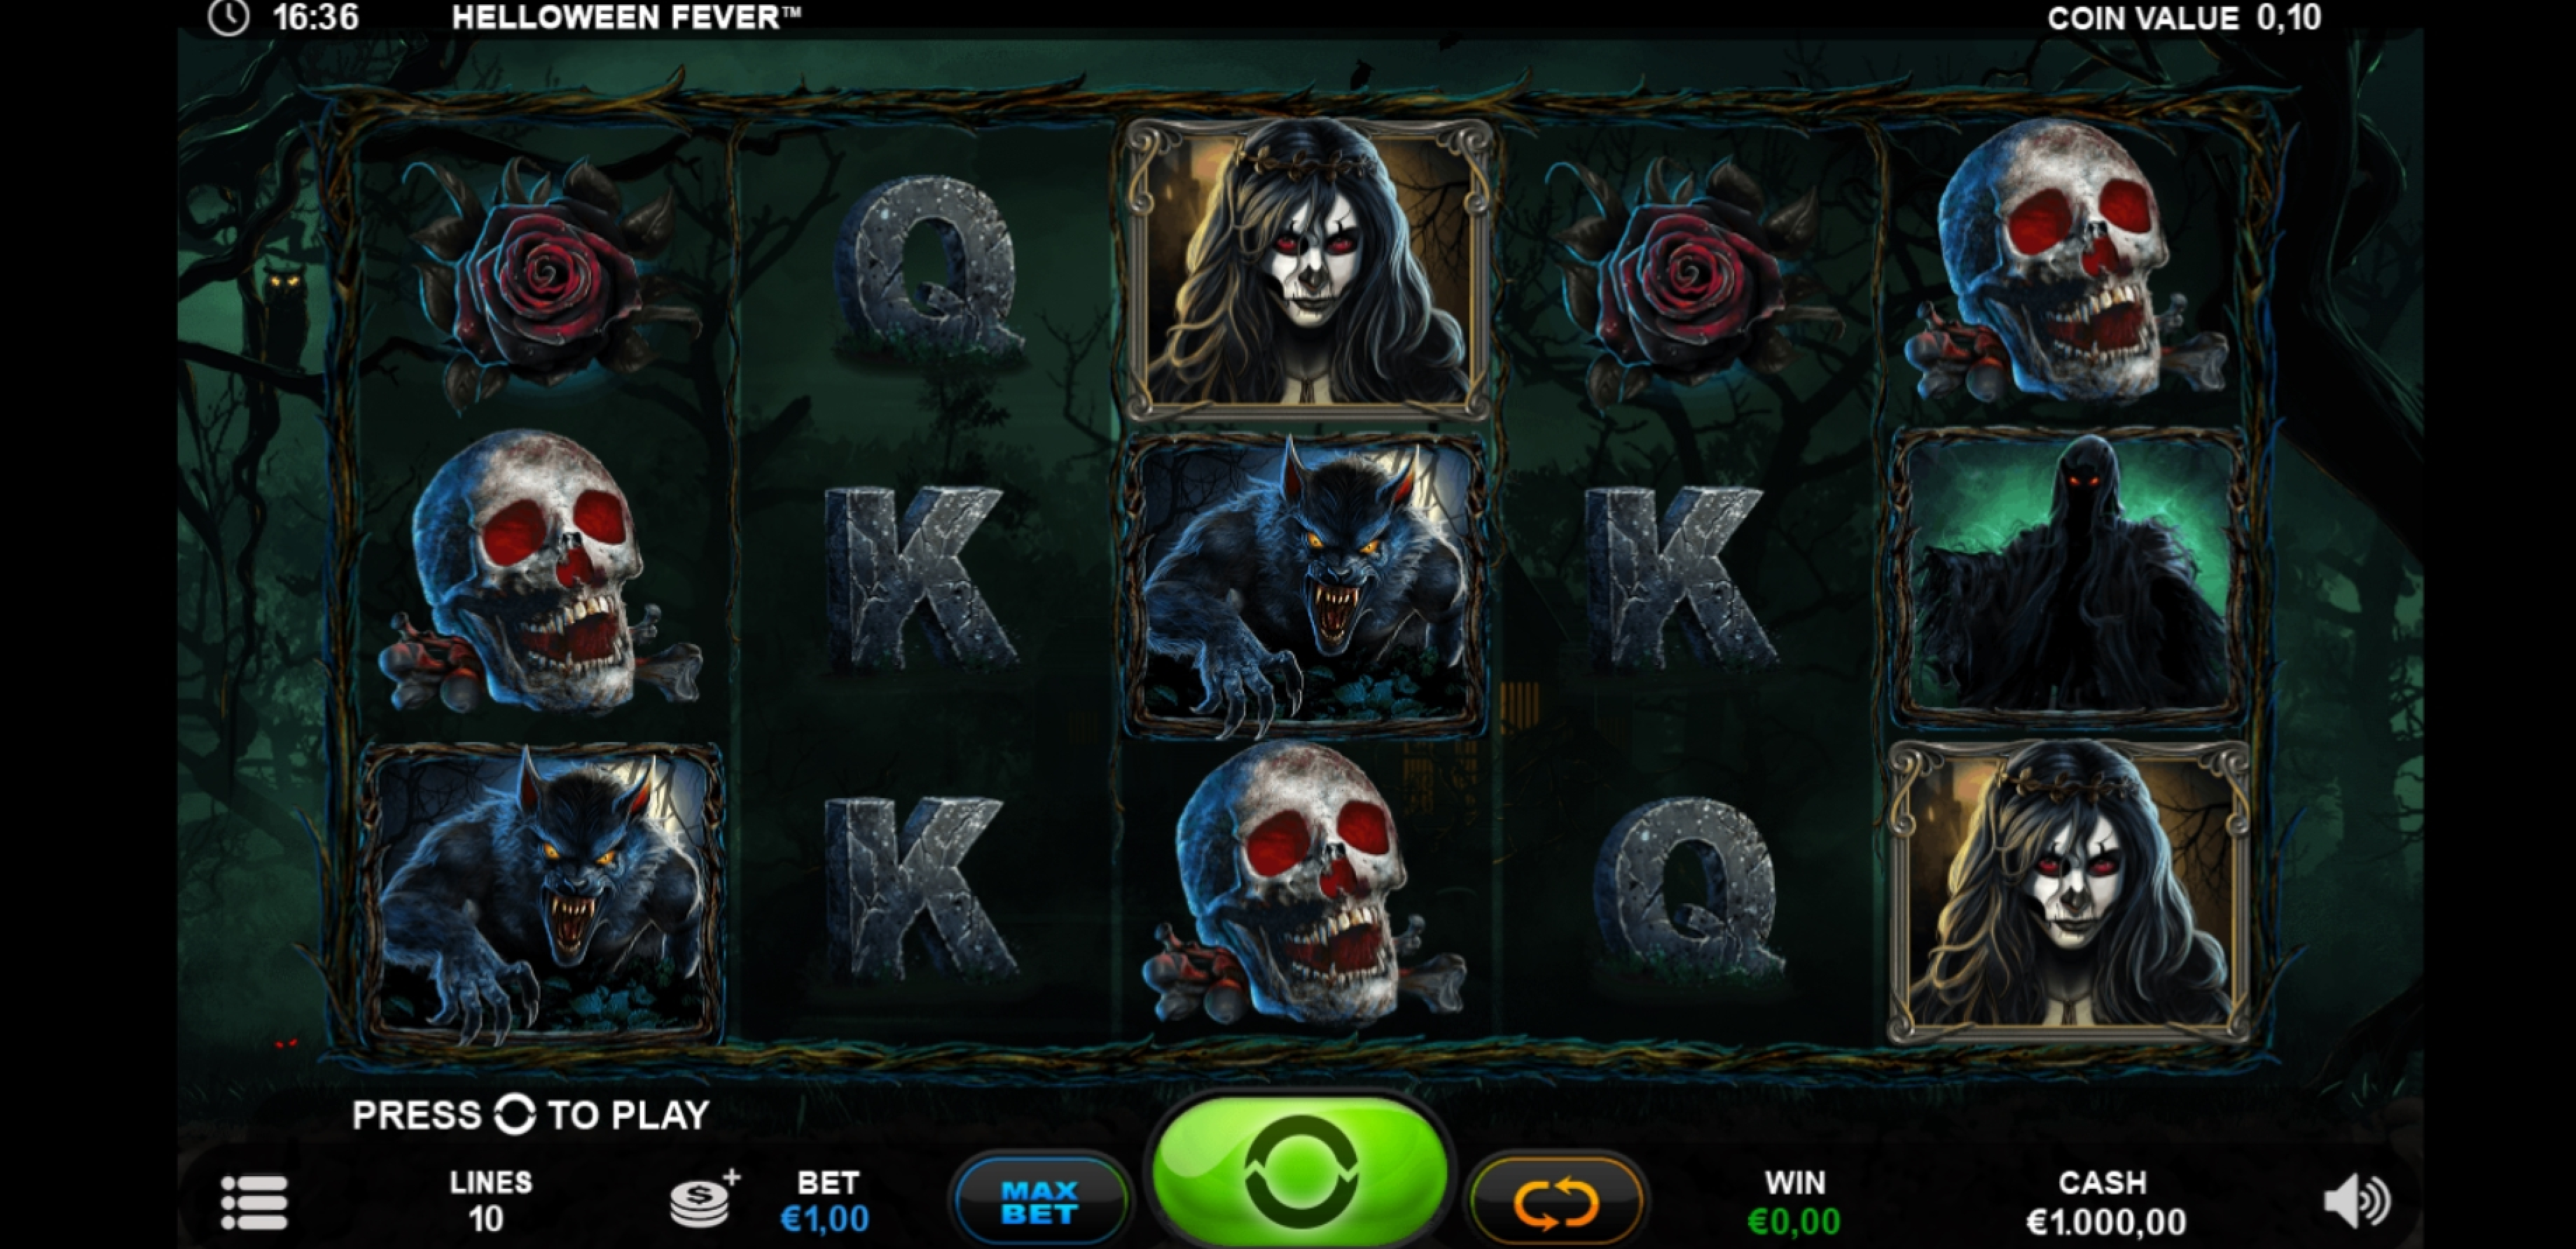 Reels in Helloween Fever Slot Game by Plank Gaming